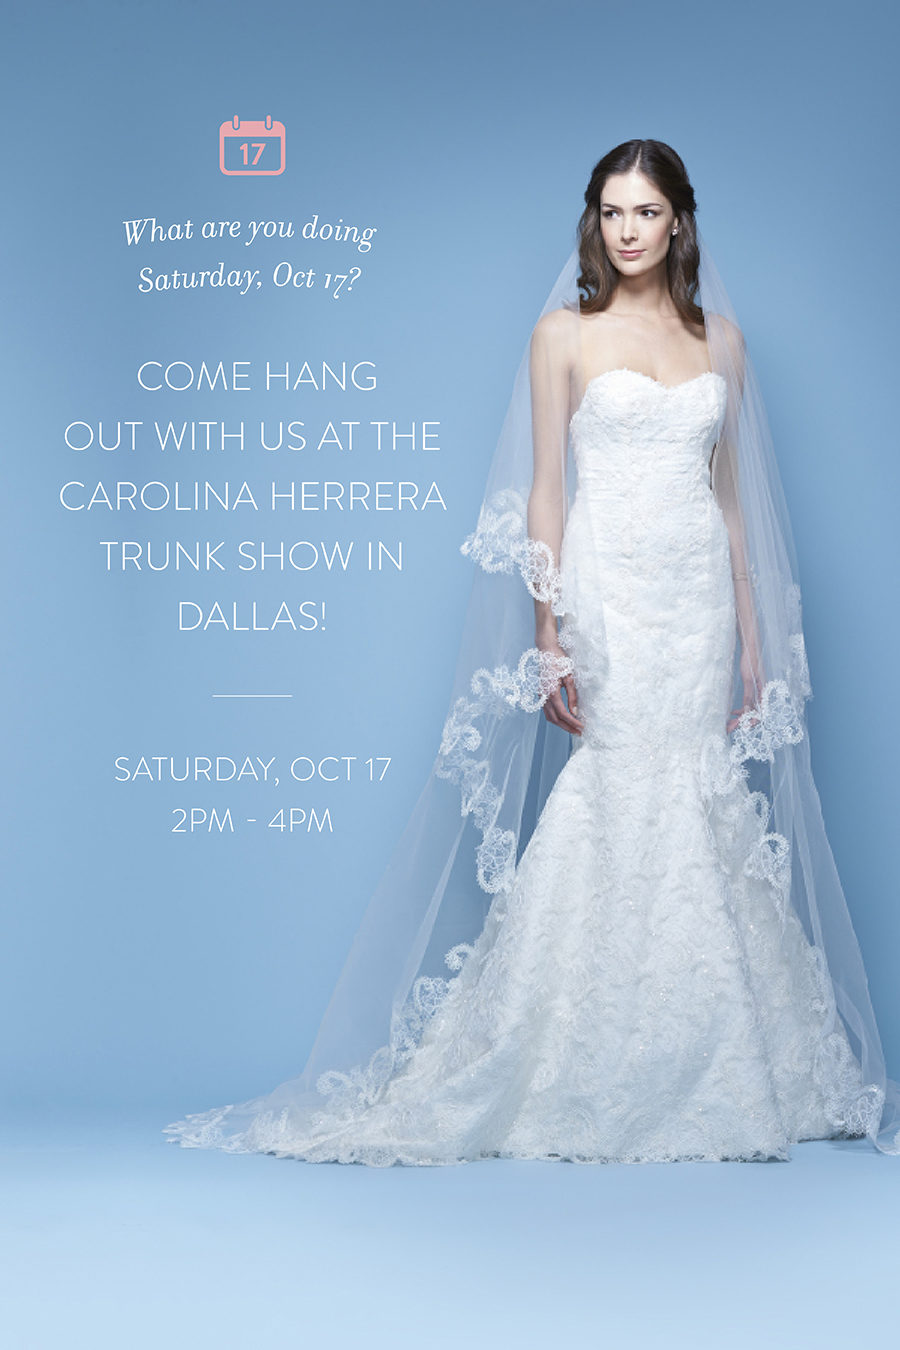 Wedding Gown Trunk Shows 87 Inspirational